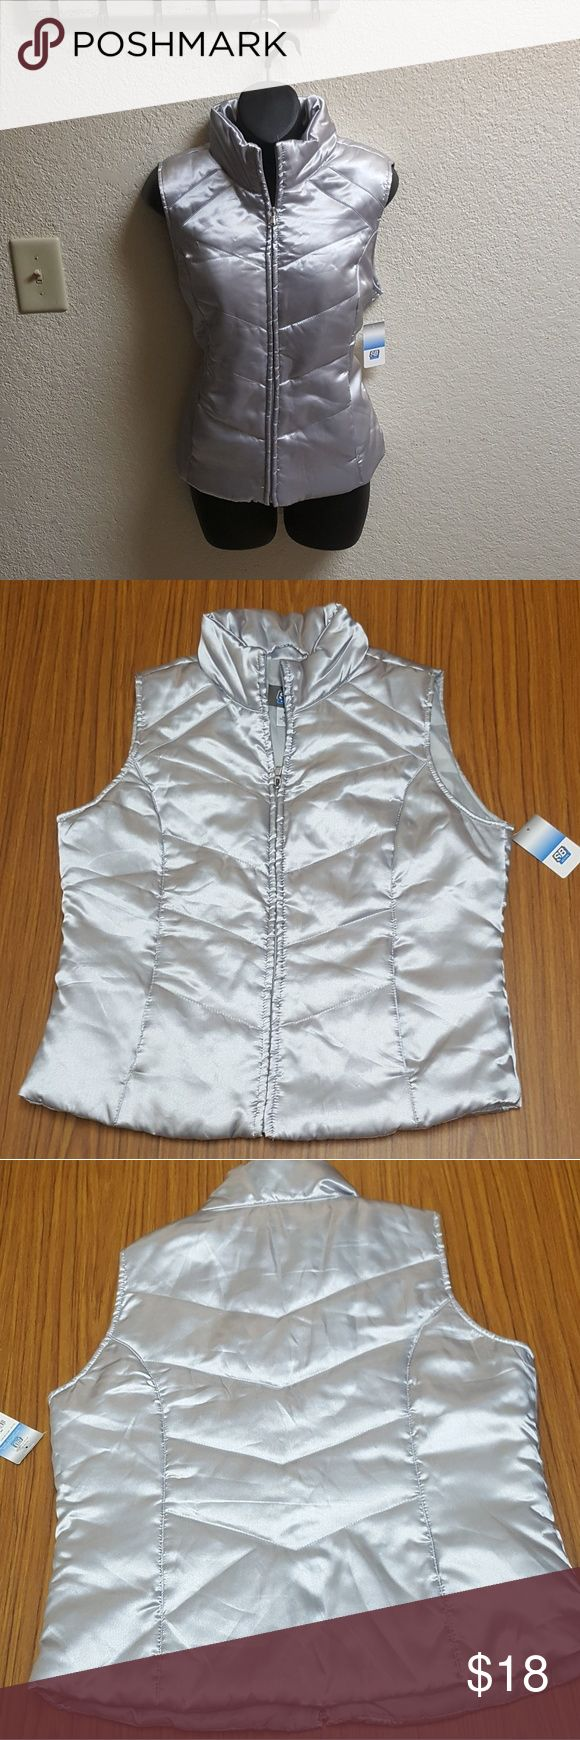 "SJB Active Silver Vest SJB Active Silver Vest. Size Medium. Has side pockets. New with tags. 100% Polyester shell, lining, and filling. Machine wash warm and tumble dry low.  Perfect for layering over a long-sleeve shirt and staying warm! *Bust 41"" *Length 23.5"" SJB Jackets & Coats Vests"